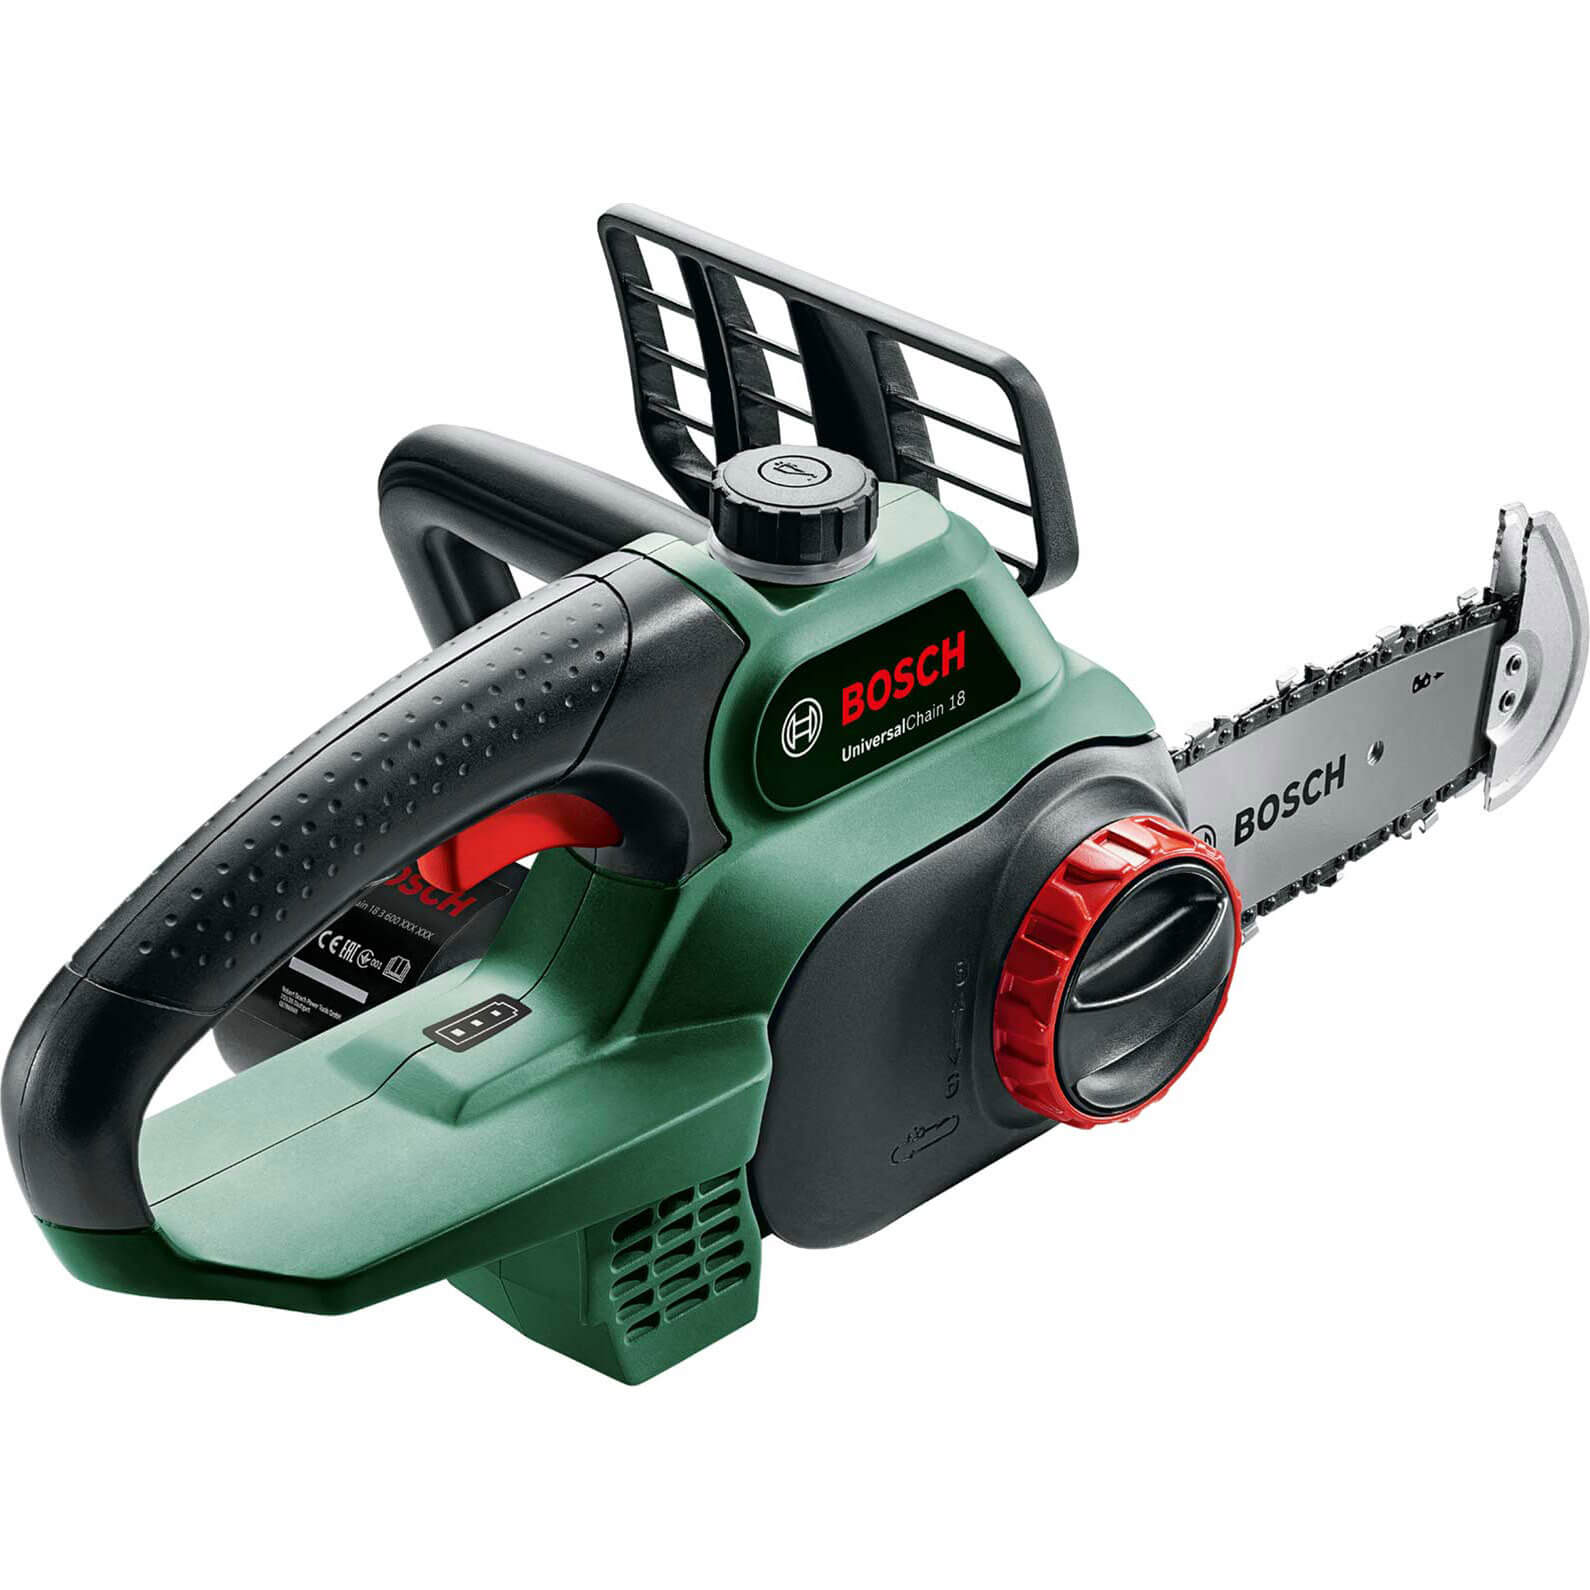 Bosch UNIVERSALCHAIN 18v Cordless Chainsaw 200mm No Batteries No Charger